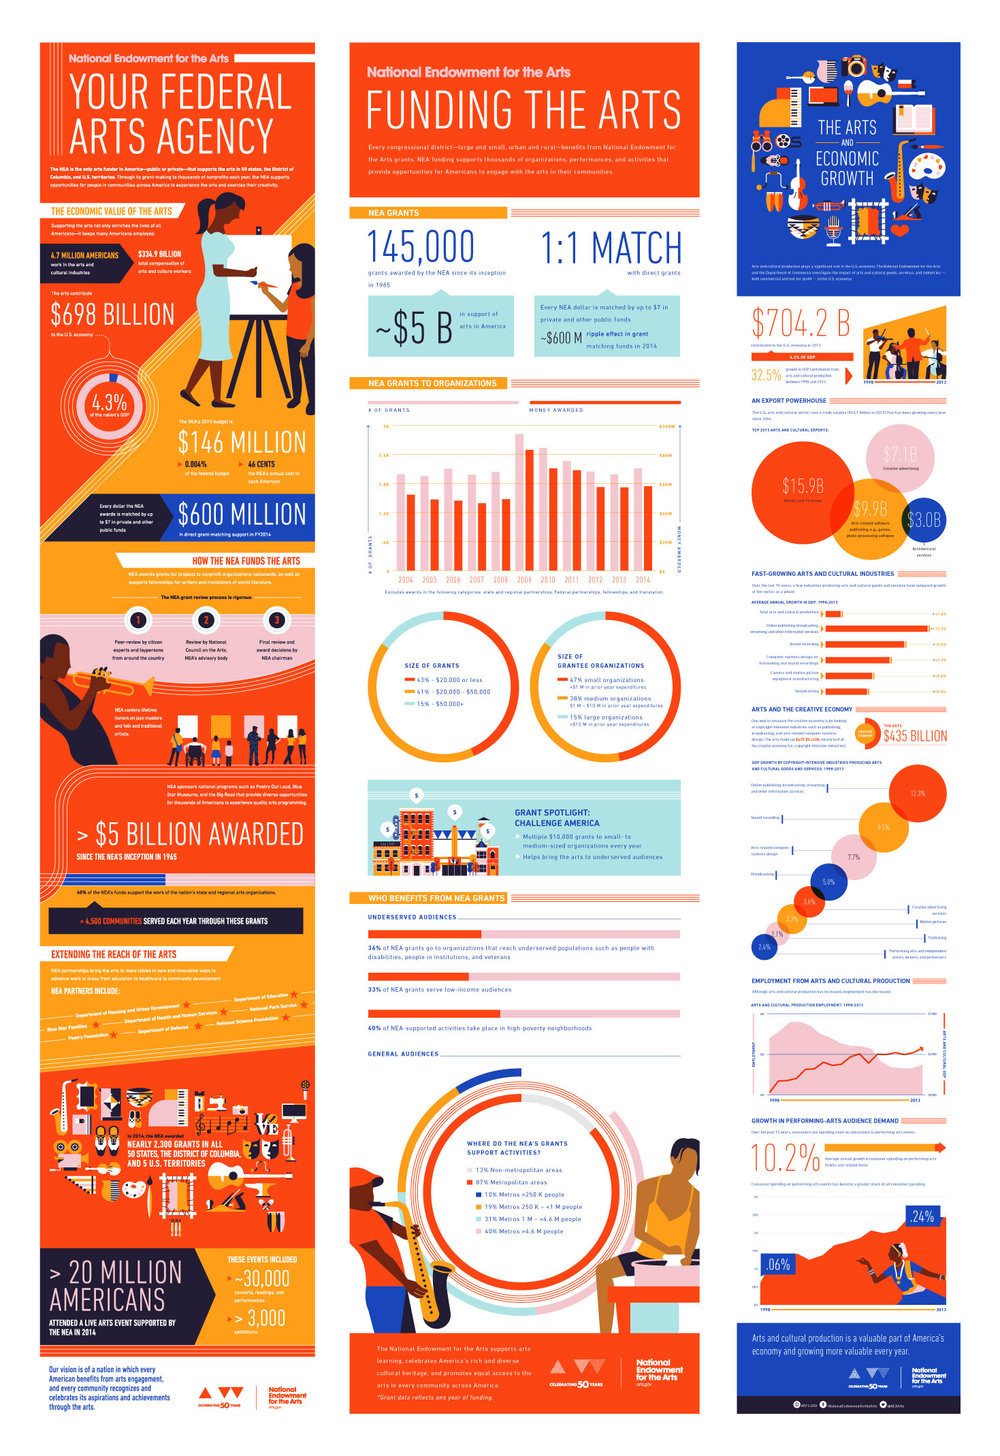 Infographics - Once the visual identity was established, we then needed to create a series of infographics and motion graphics to show the major impact that the NEA has on the US and it's individual communities. The first infographic published was a broad overview and introduction to the NEA. Following infographics covered topics like how the arts are funded, healing arts, the impact that art has on the economy, etc.